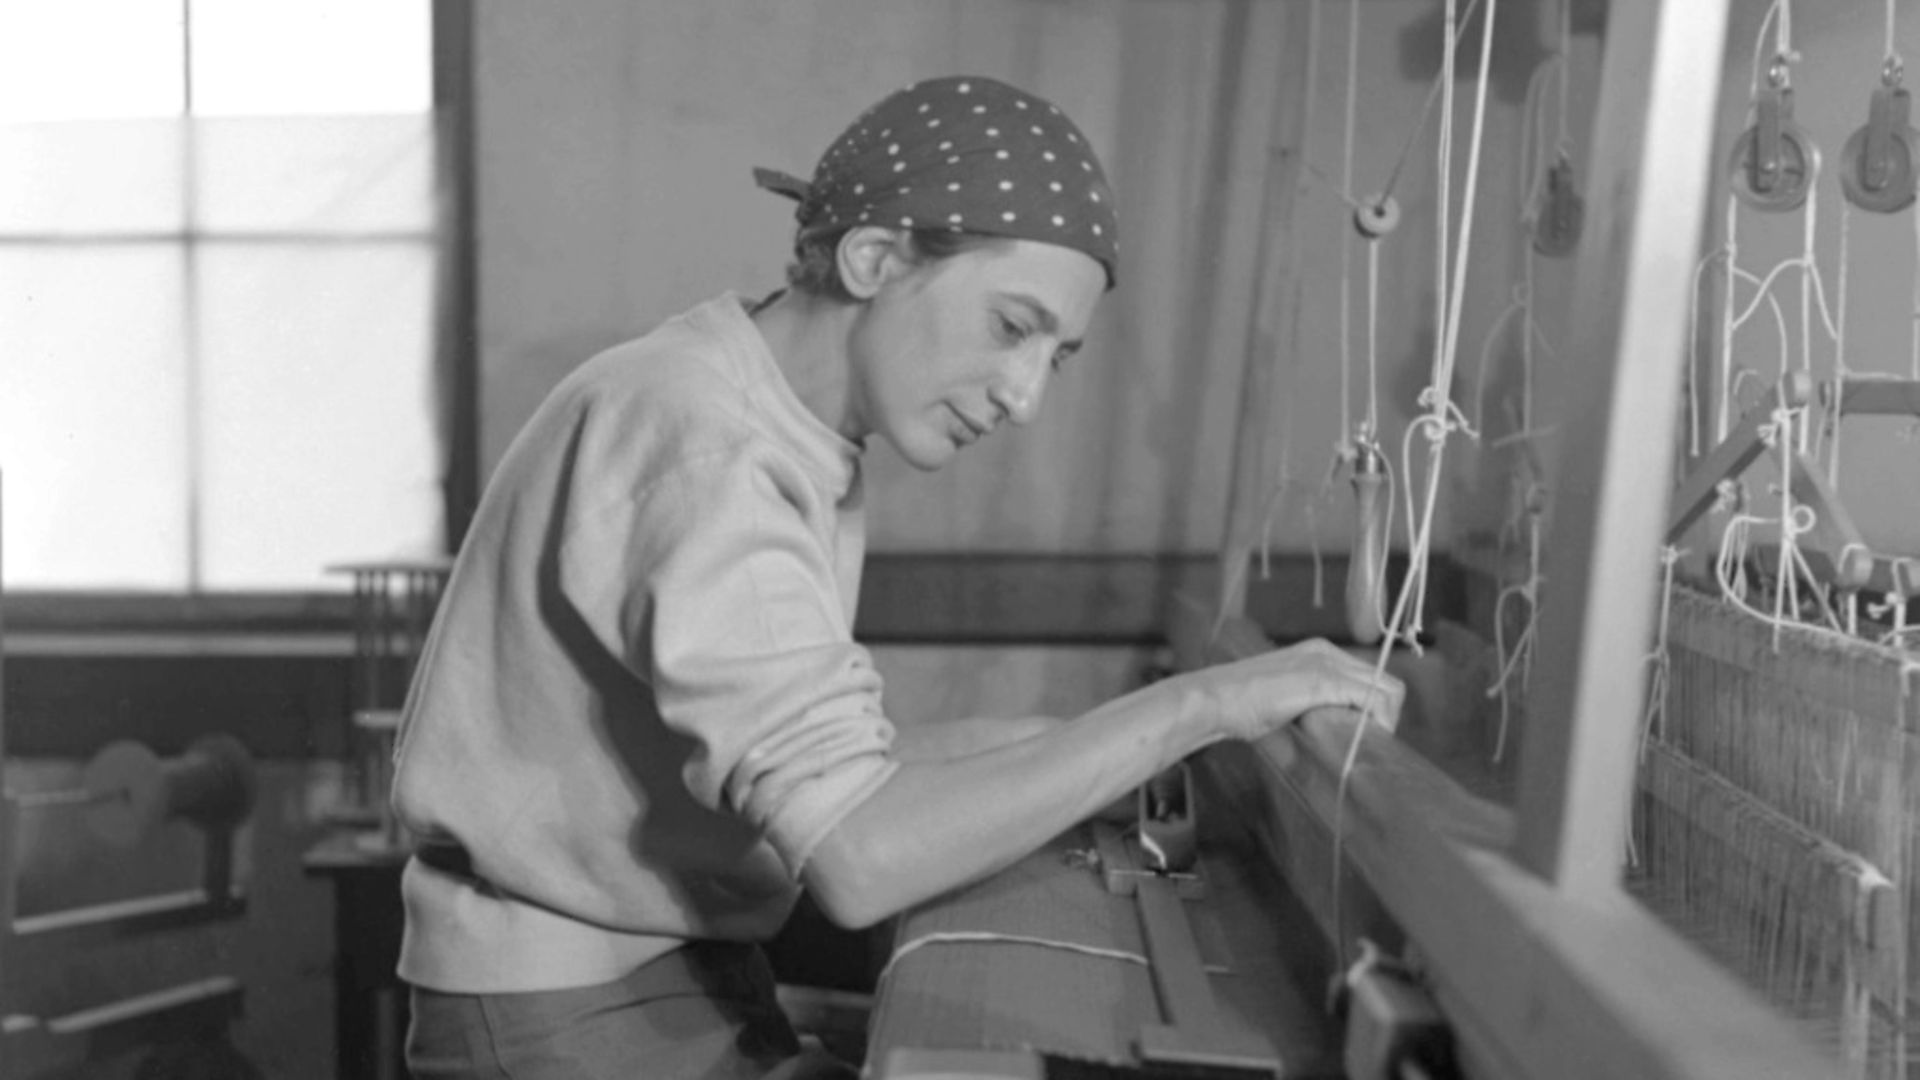 anni albers in her weaving studio at black mountain college, 1937. Photo: The Josef and Anni Albers Foundation - Credit: Archant